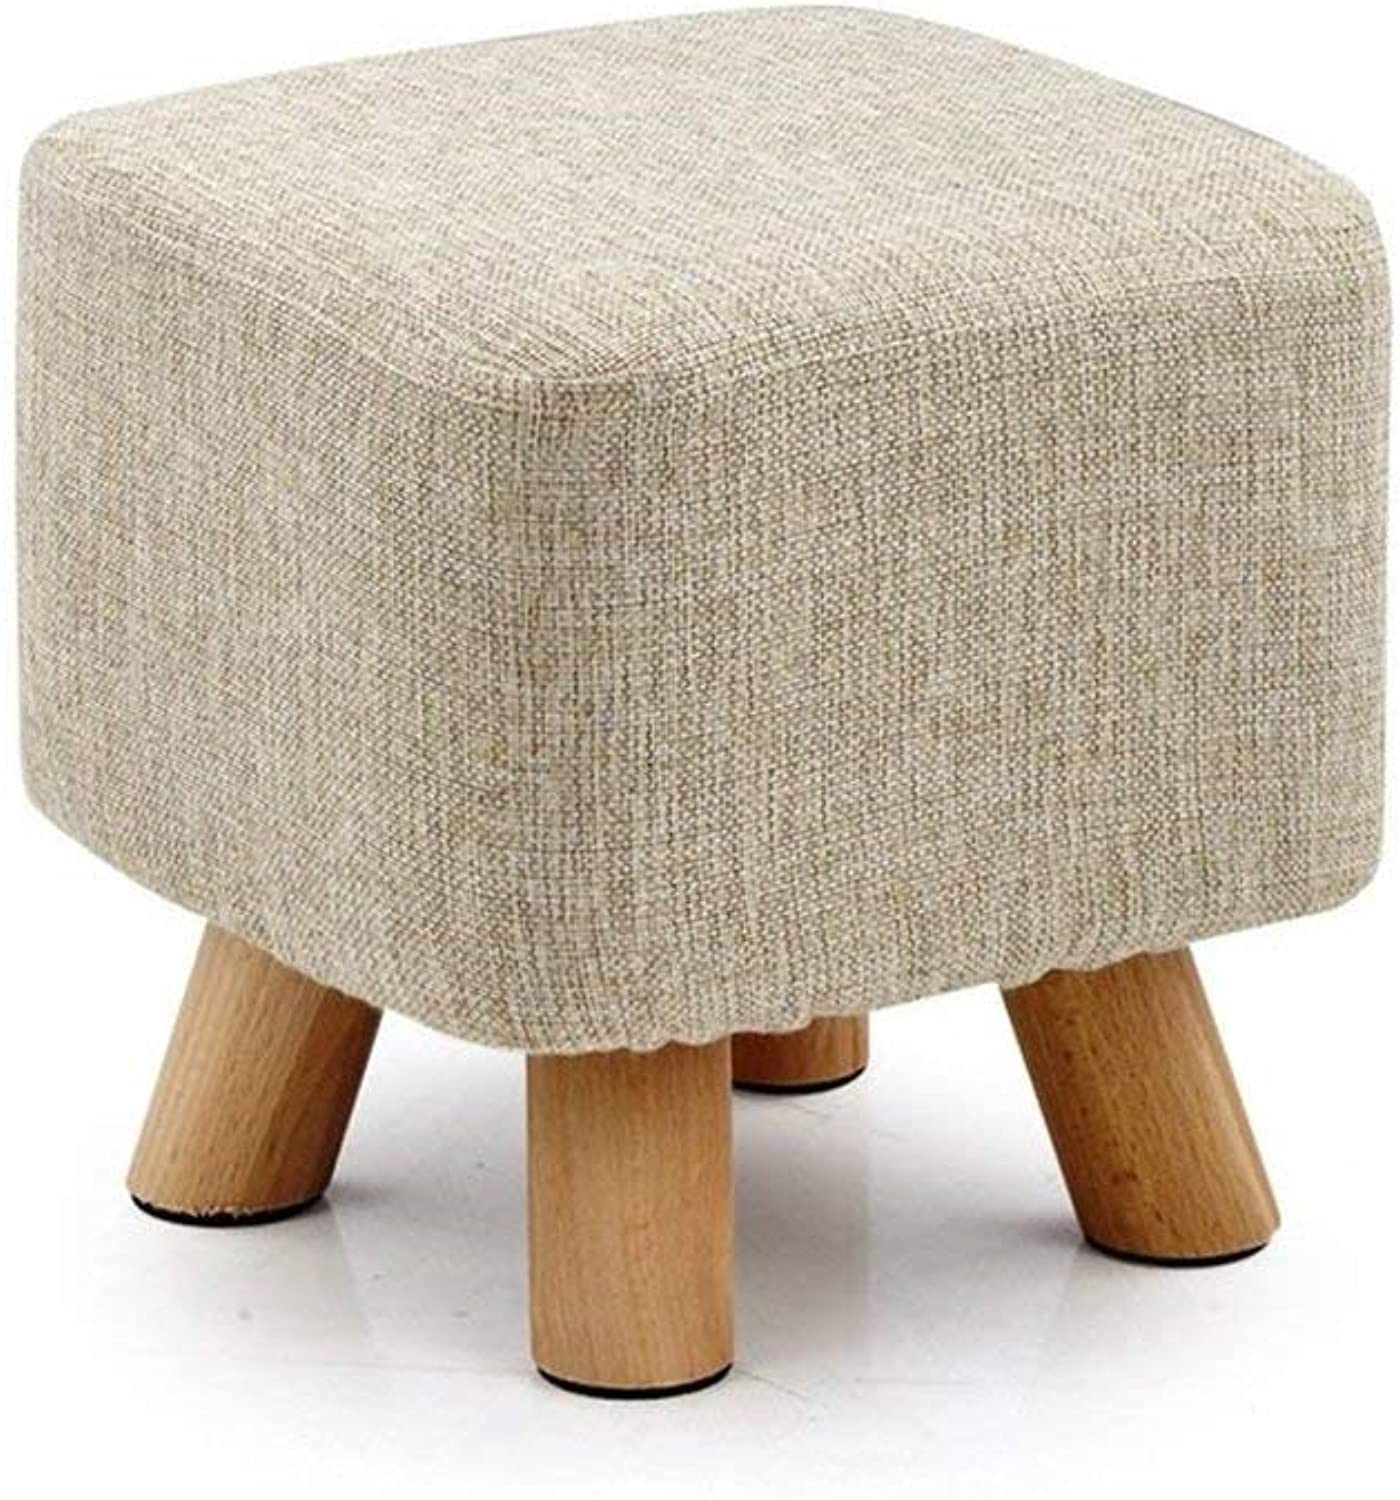 ATR Sofa Stool Fabric Art Small Stool Solid Wood shoes Bench Home Small Stool Bench (color    5)